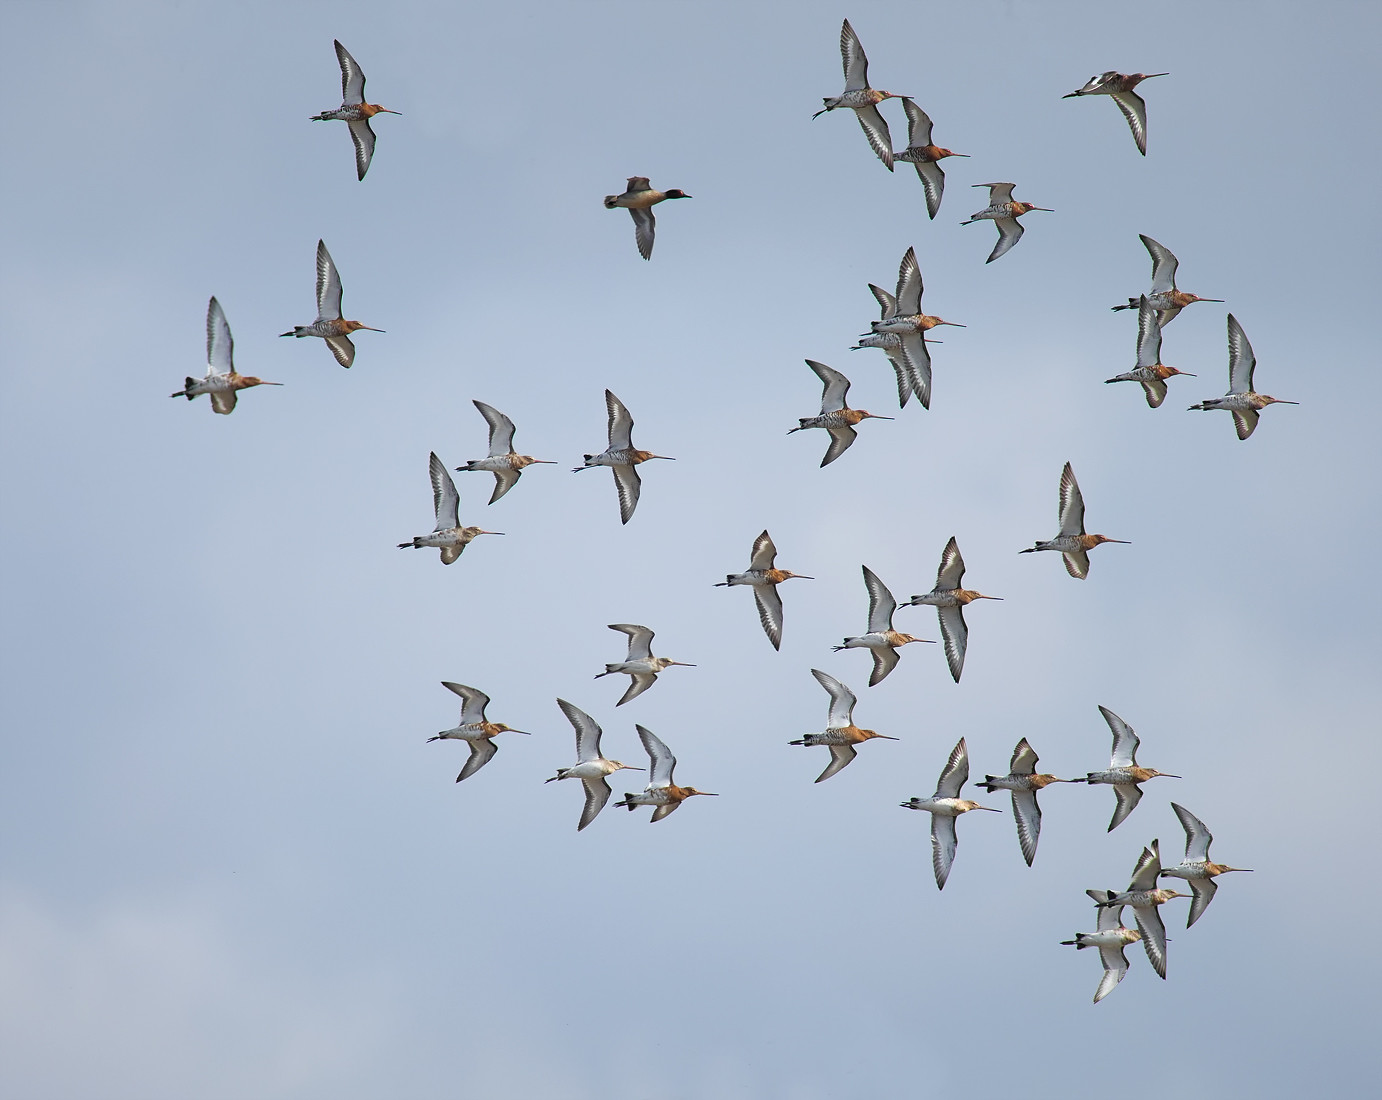 Black-tailed Godwits in flight, with Teal